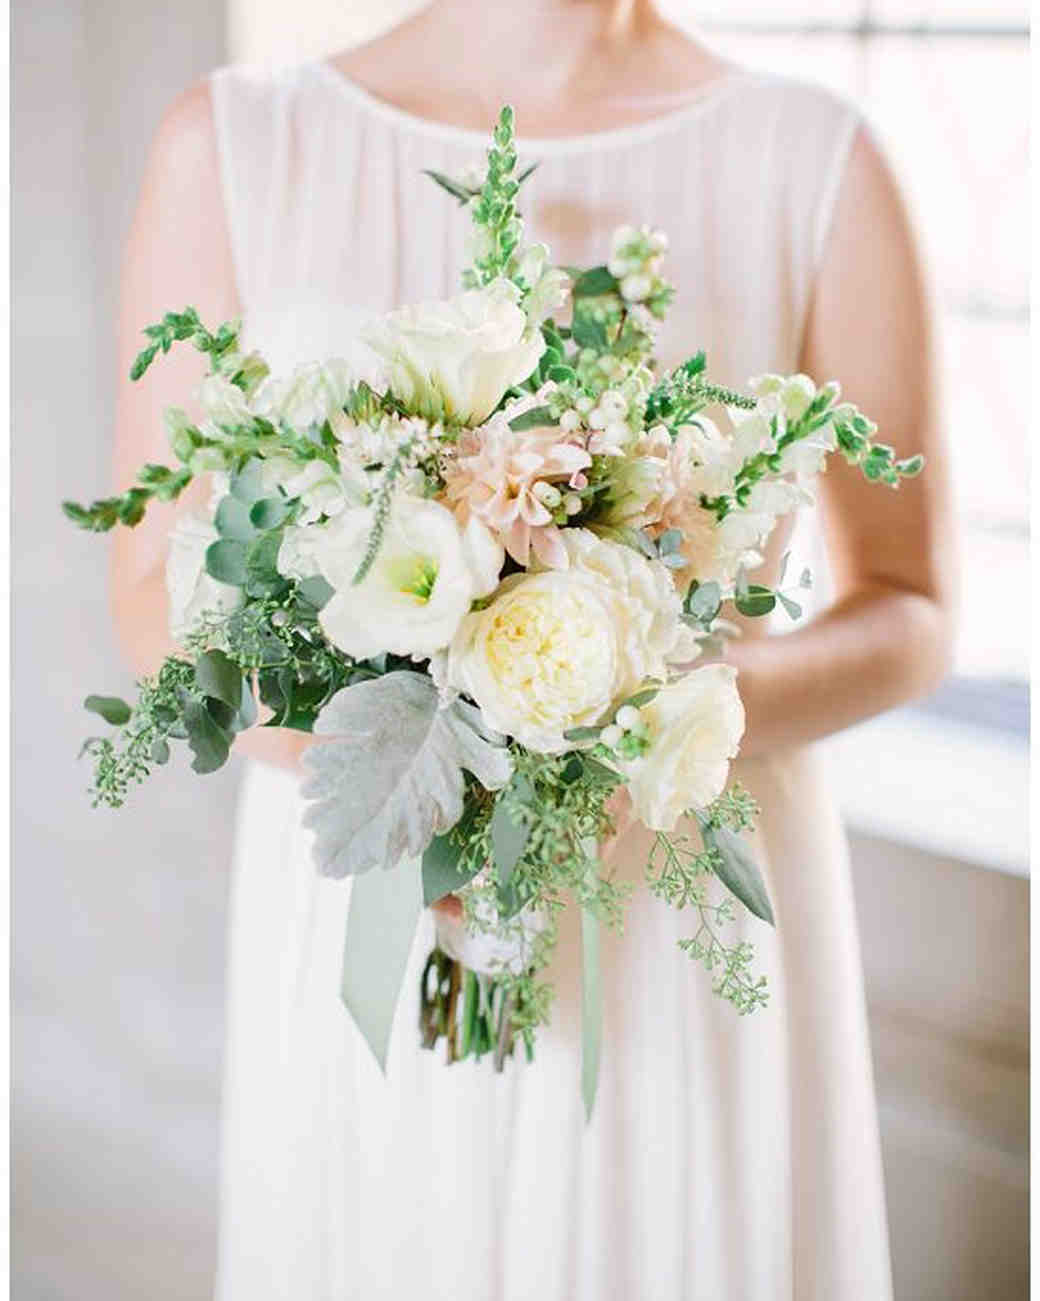 24 ways to use in season flowers in your fall wedding arrangements 24 ways to use in season flowers in your fall wedding arrangements martha stewart weddings mightylinksfo